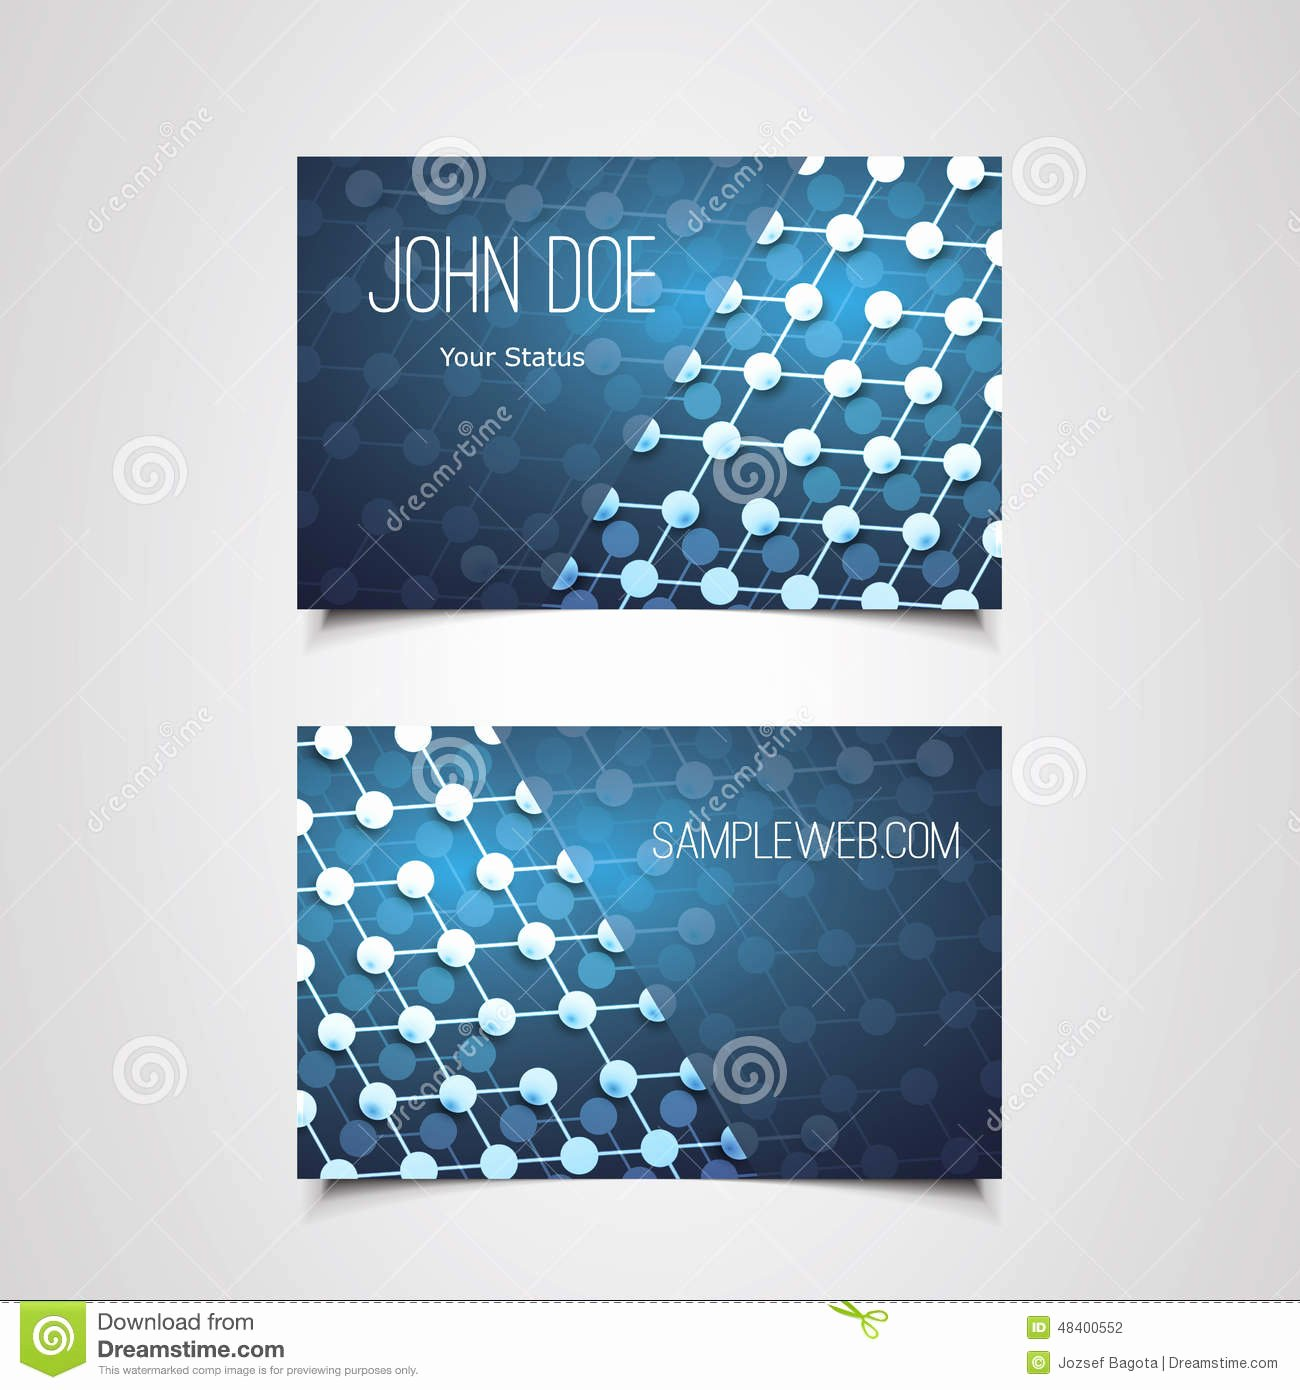 Networking Business Card Template Inspirational Networking Business Card Templates Business Card Design